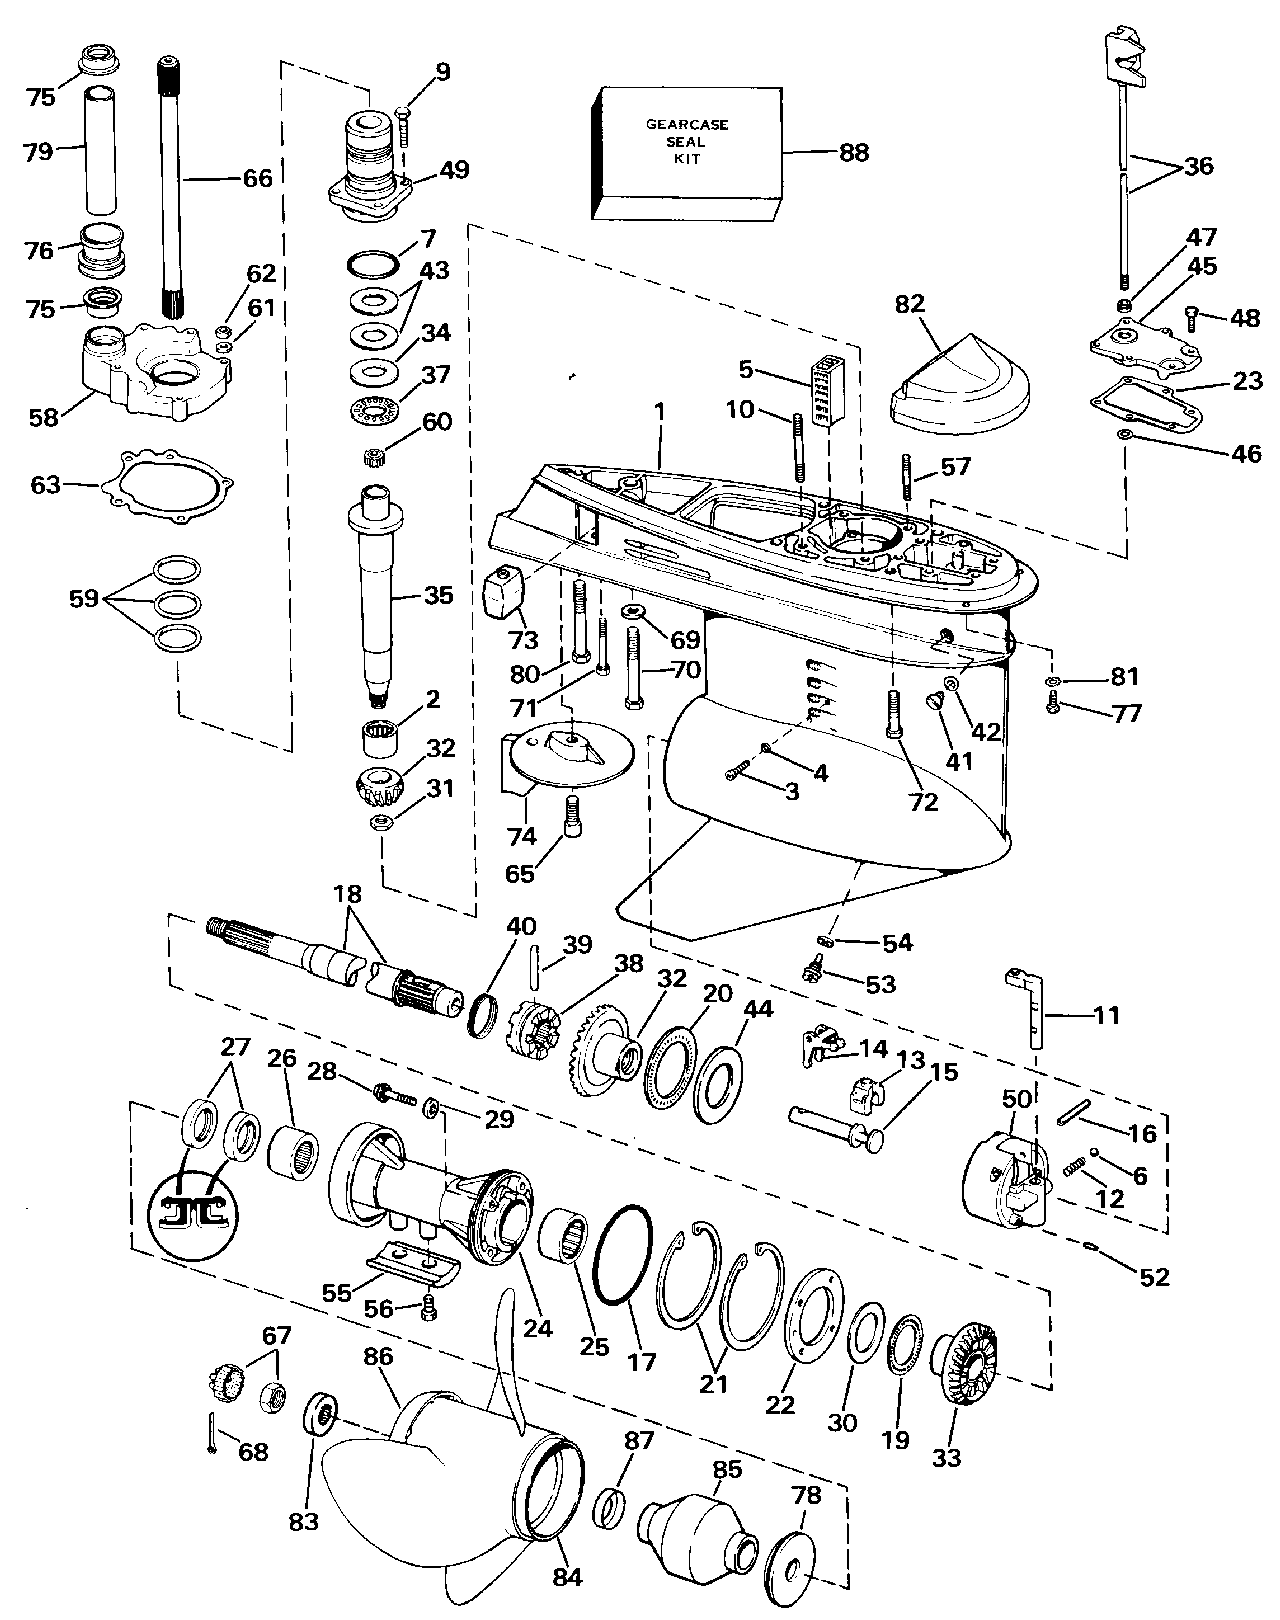 Ac Unit Diagram